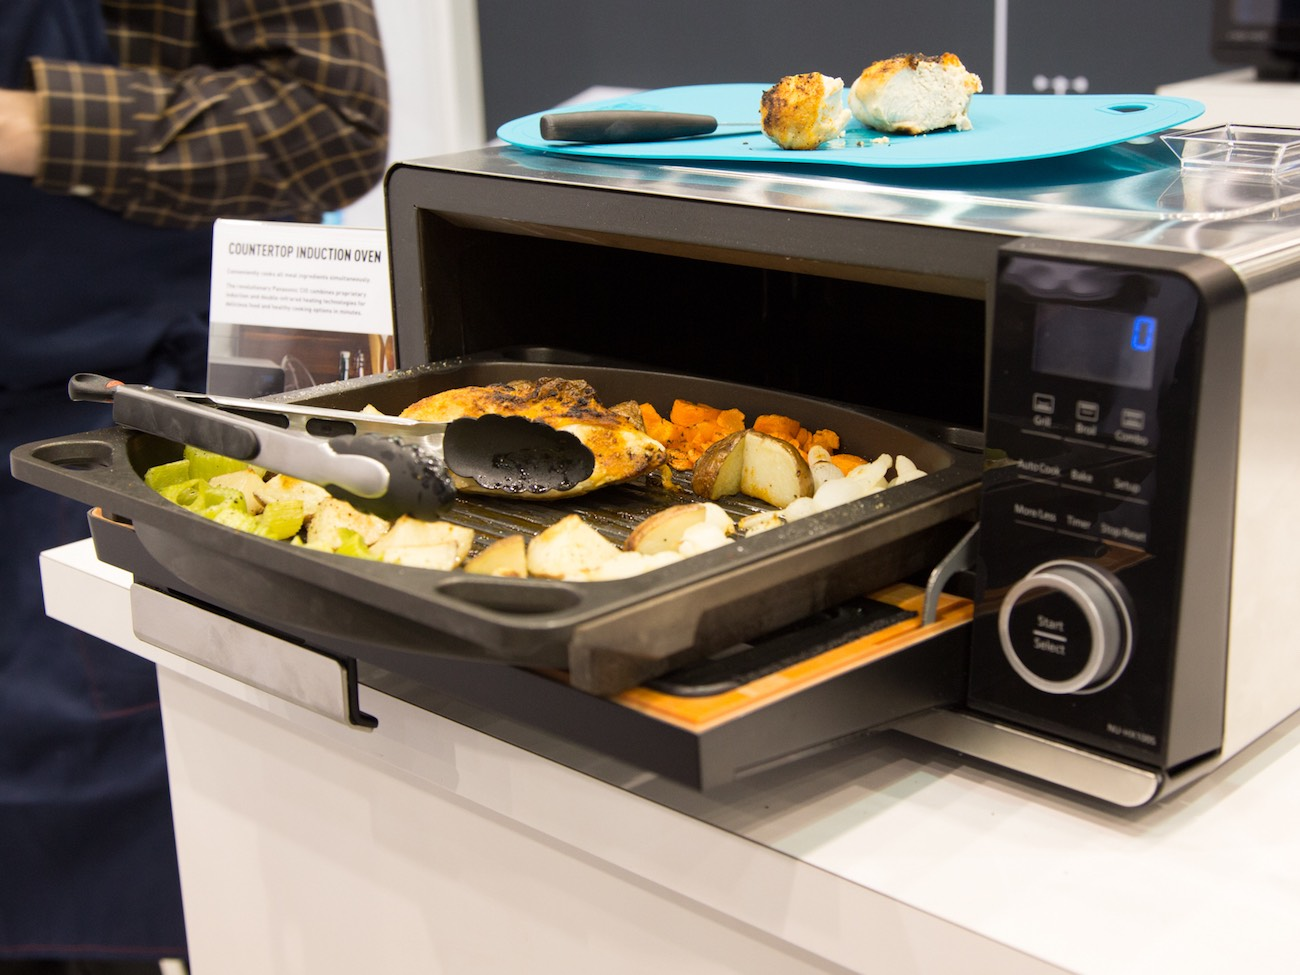 Panasonic Countertop Induction Oven Review ? The Gadget Flow